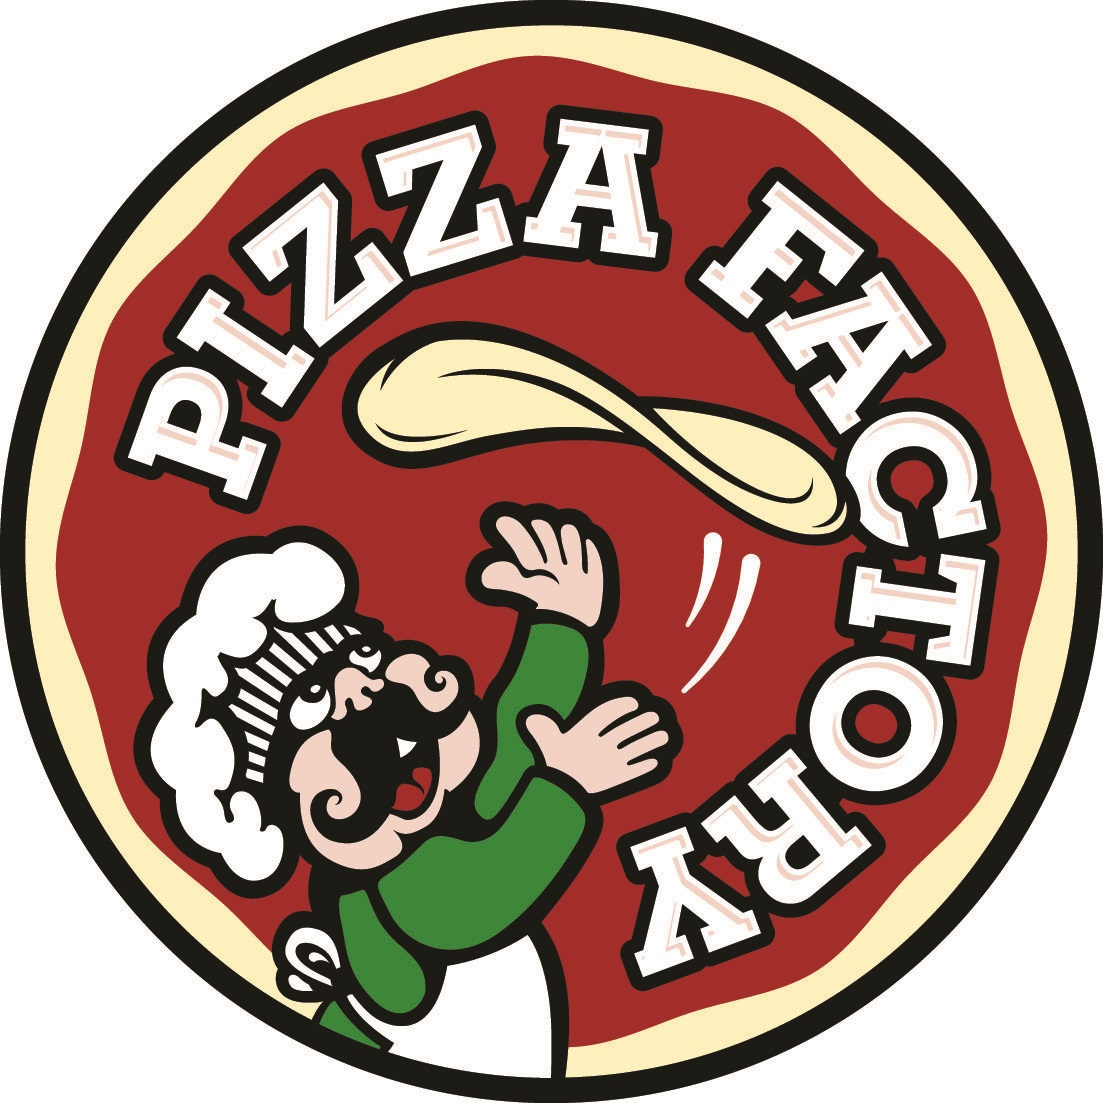 Willow Creek Pizza Factory